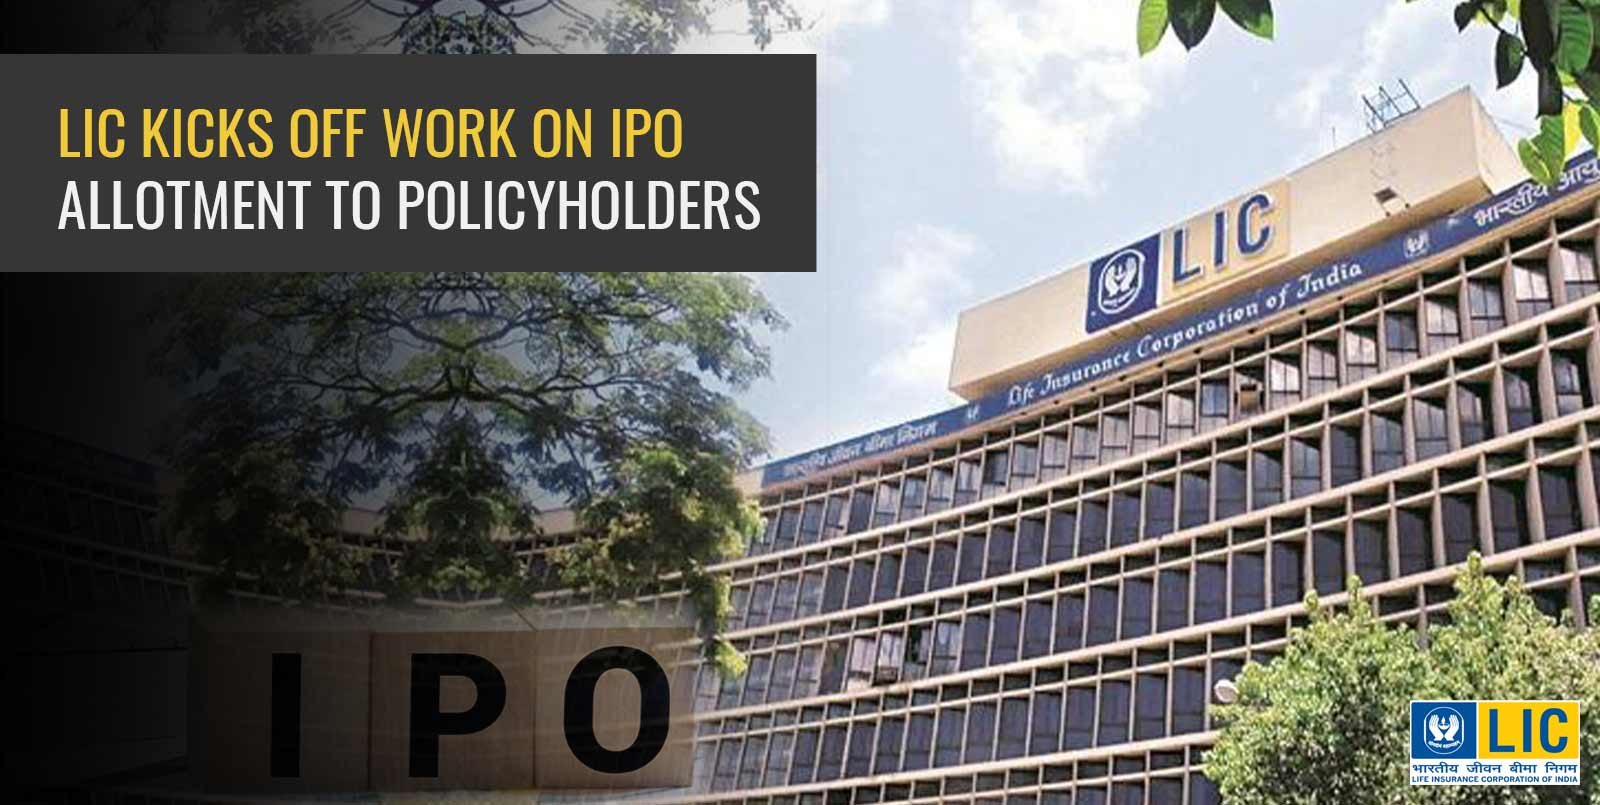 LIC kicks off work on IPO allotment to policyholders